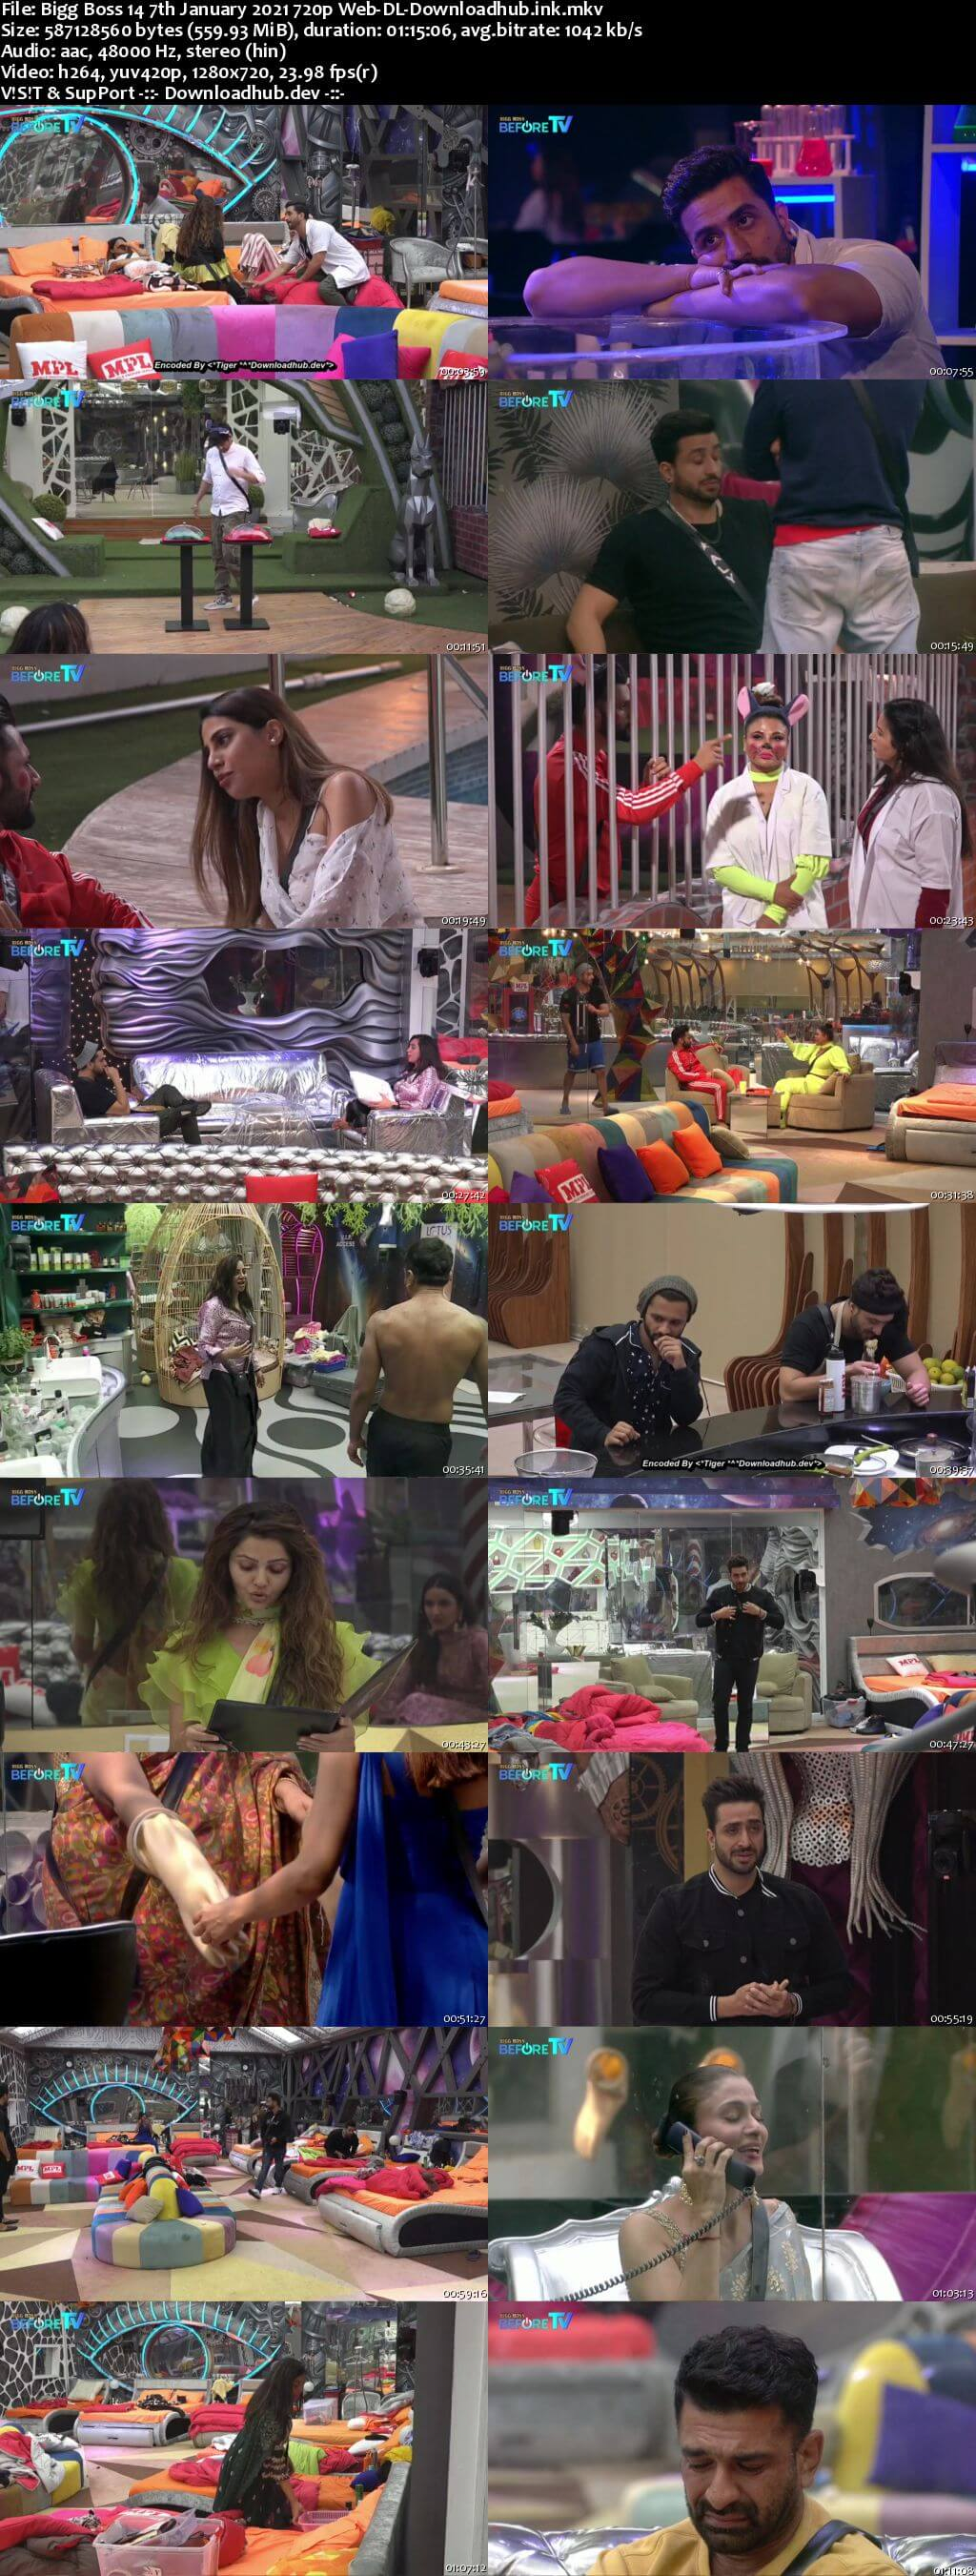 Bigg Boss 14 7th January 2021 Episode 96 720p 480p Web-DL